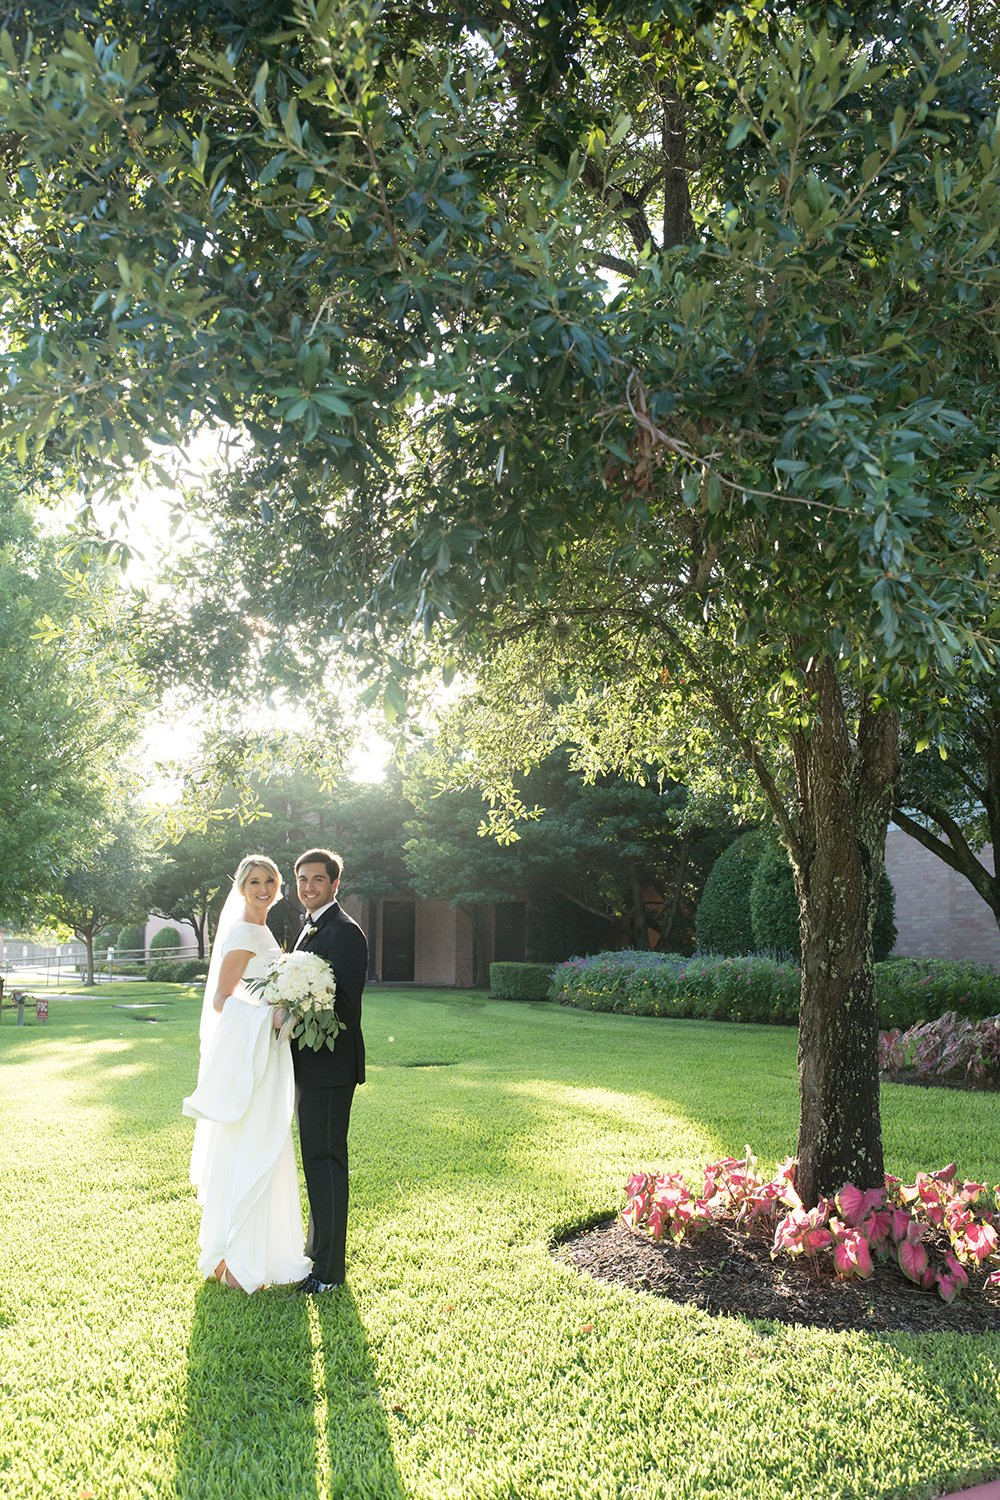 Houstonian Hotel, couple, tree, rustic, outdoor, wedding, houston, landscape